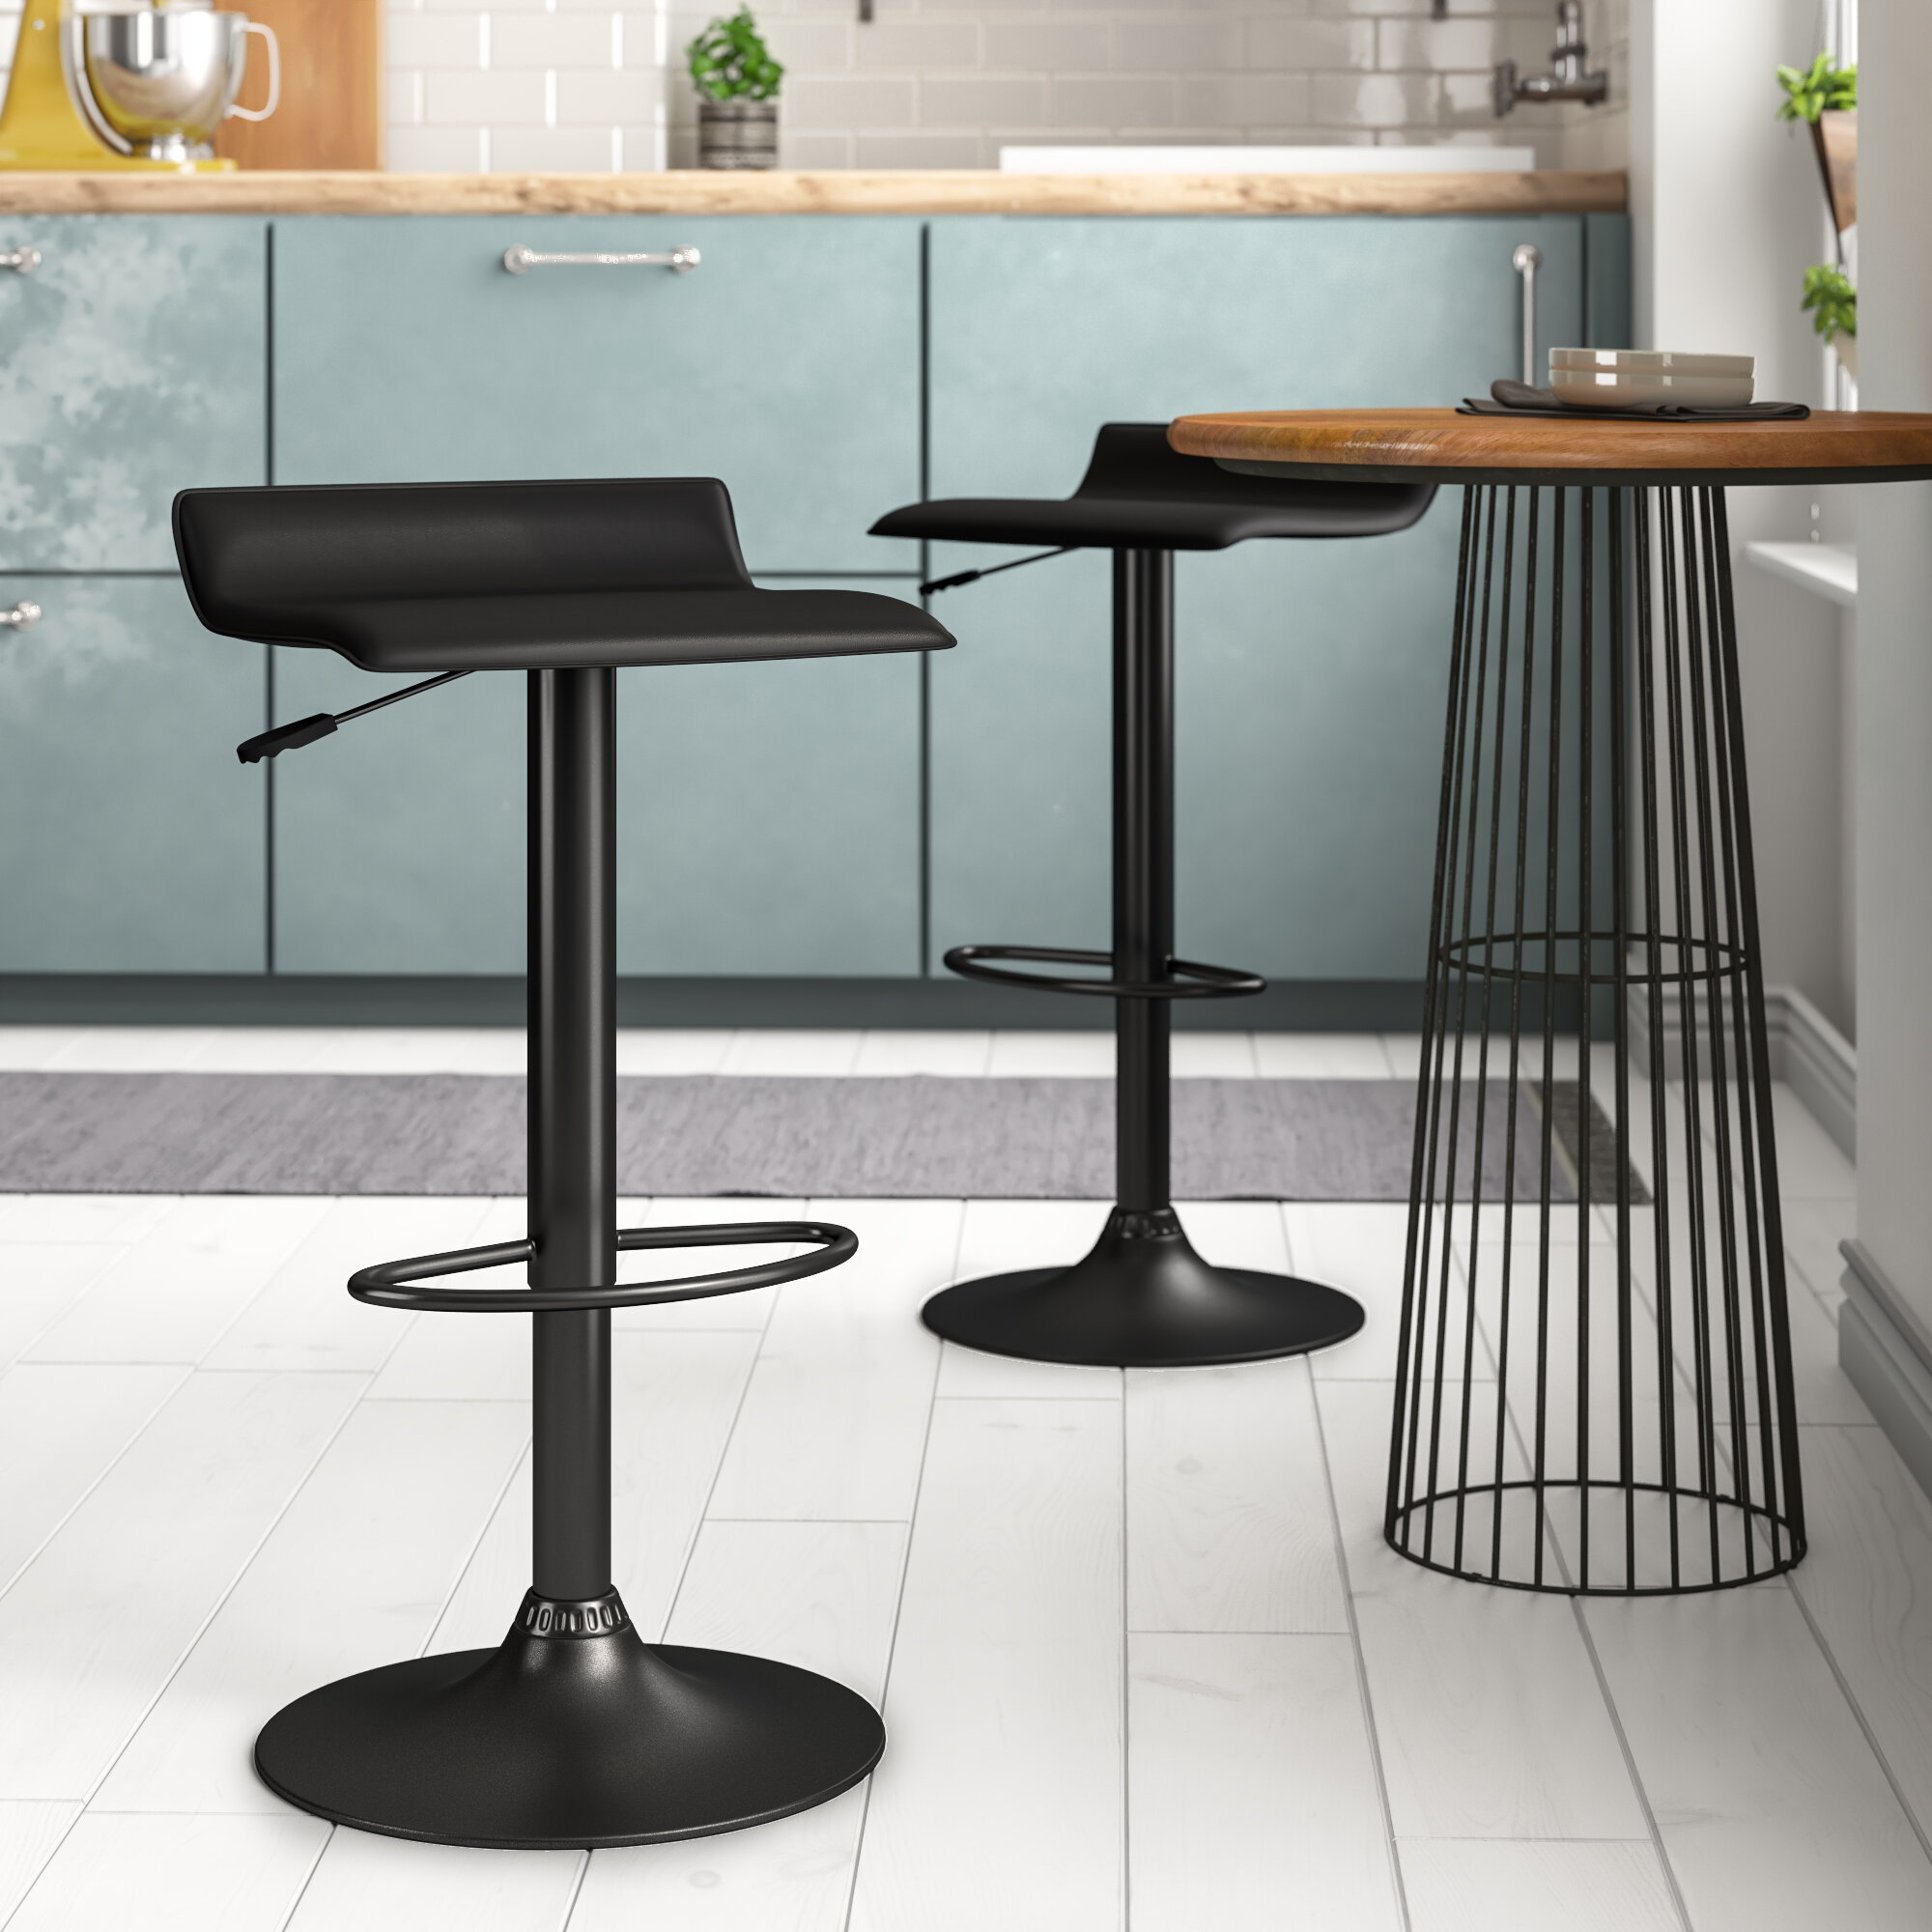 Magnificent Industrial Pedestal Bar Stools Youll Love In 2019 Wayfair Alphanode Cool Chair Designs And Ideas Alphanodeonline